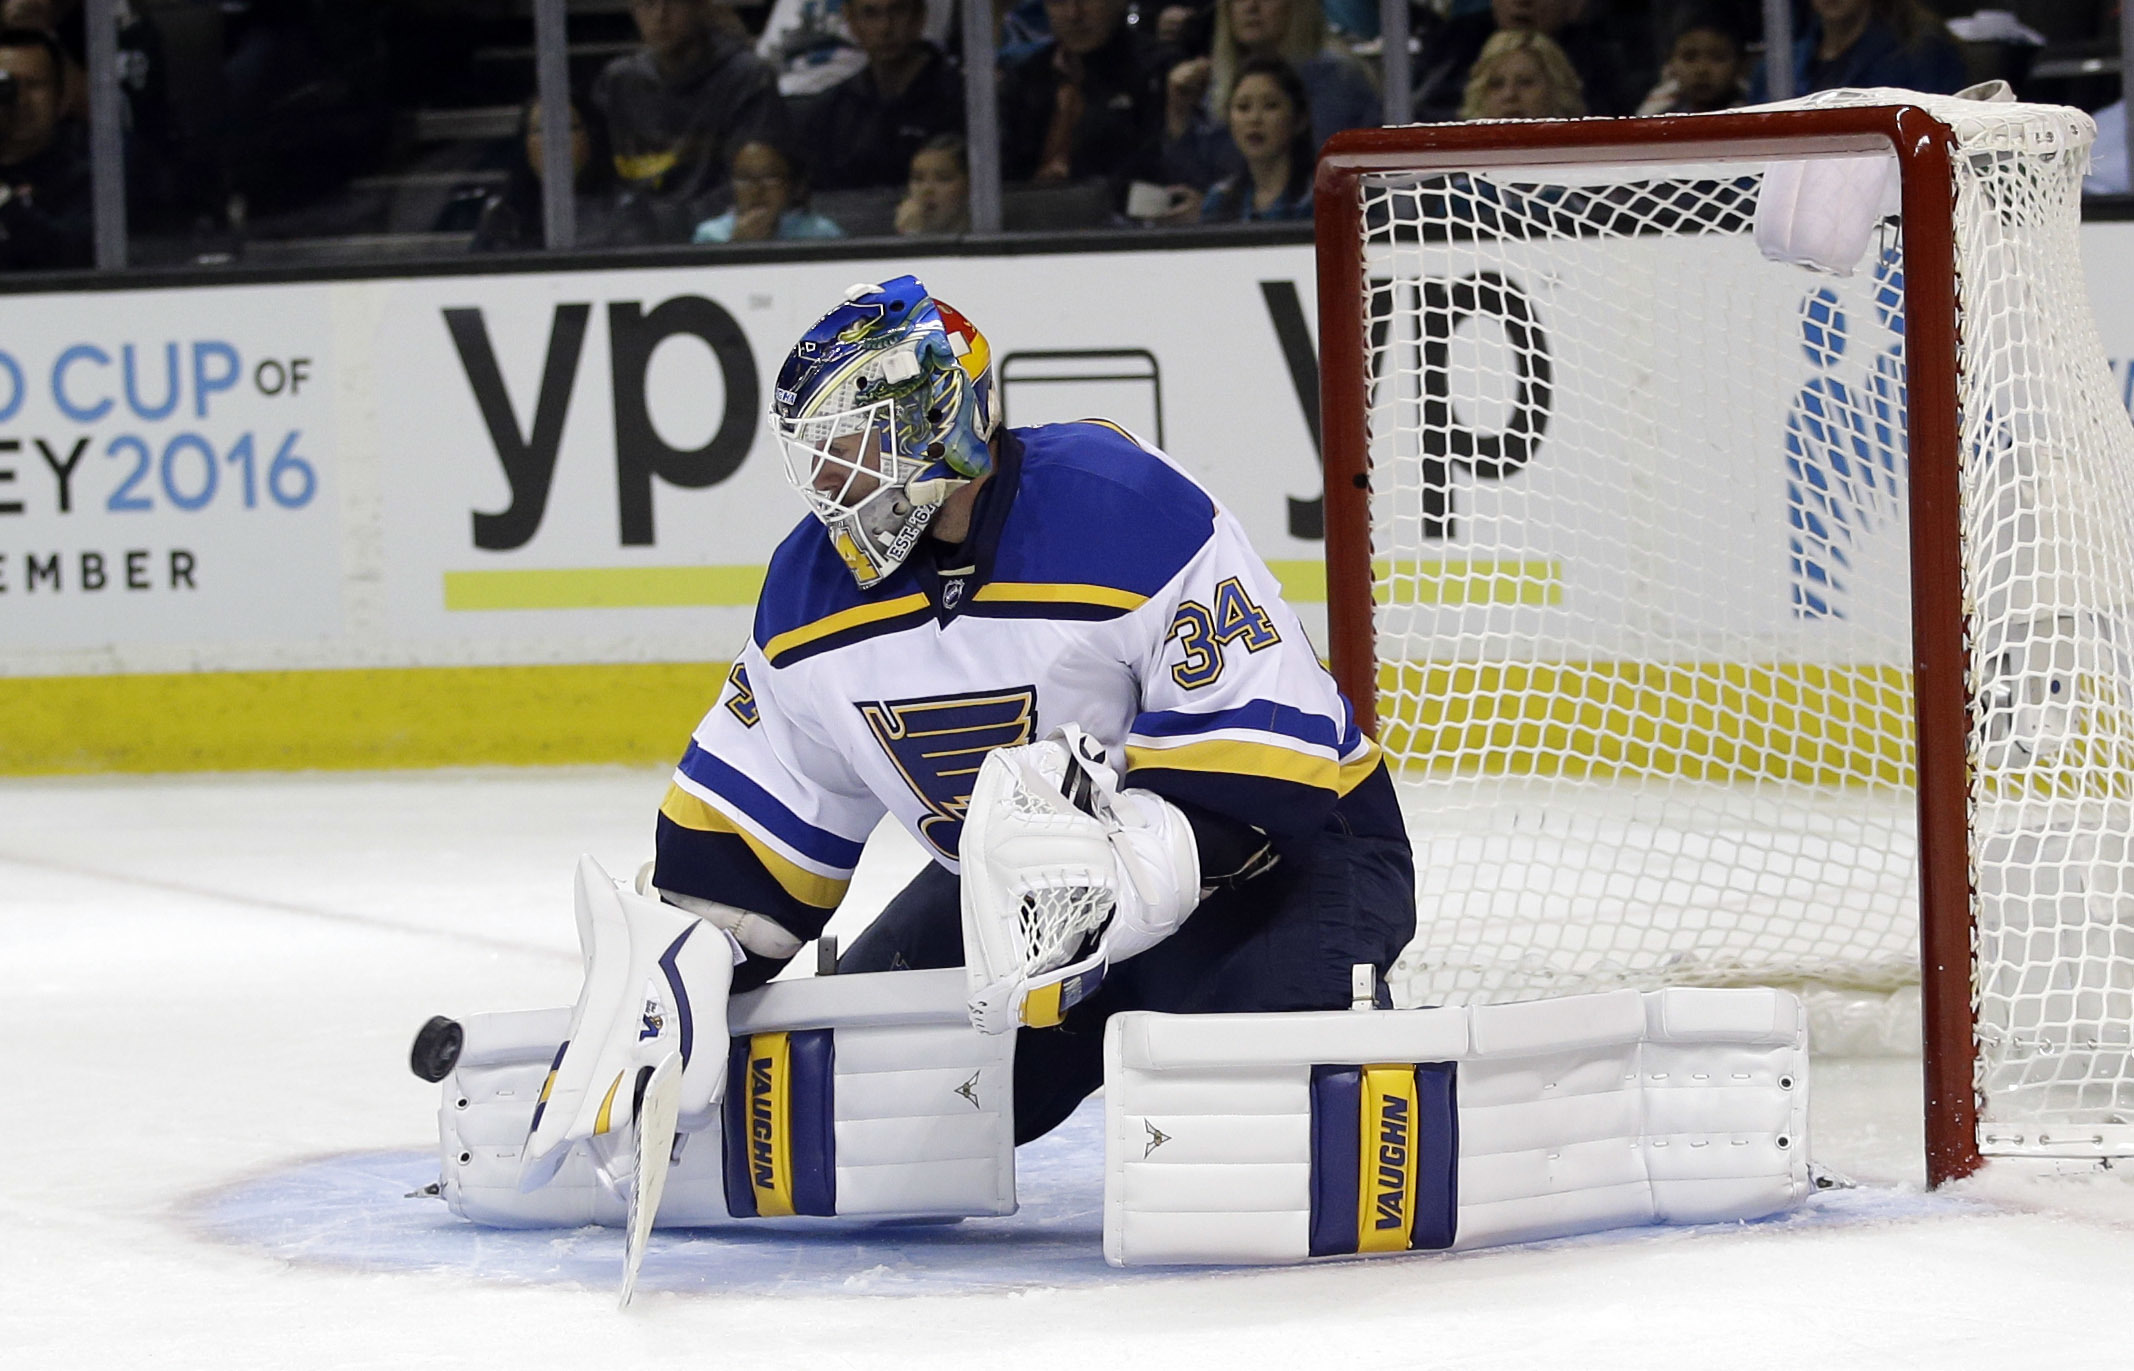 St. Louis Blues goalie Jake Allen stops a shot during the second period in Game 4 of the NHL hockey Stanley Cup Western Conference finals against the San Jose Sharks on Saturday, May 21, 2016, in San Jose, Calif. (AP Photo/Marcio Jose Sanchez)